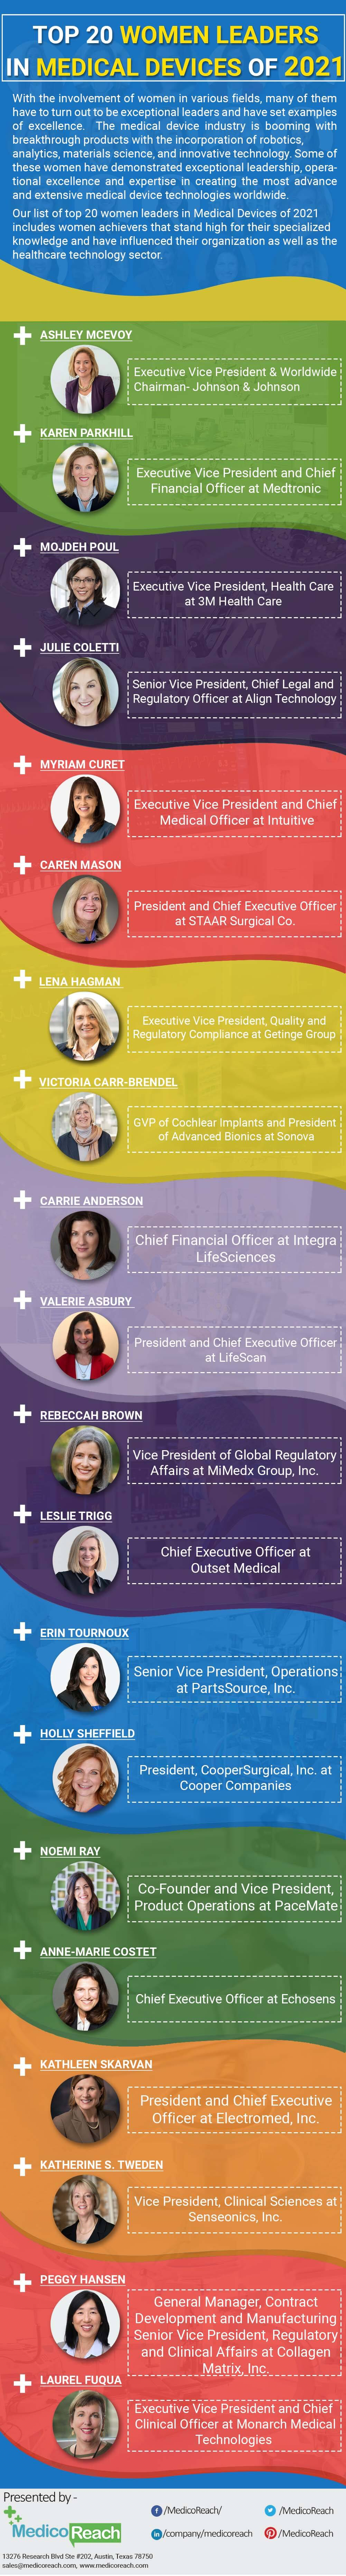 Top 20 Women leaders in medical Devices of 2021 - MR